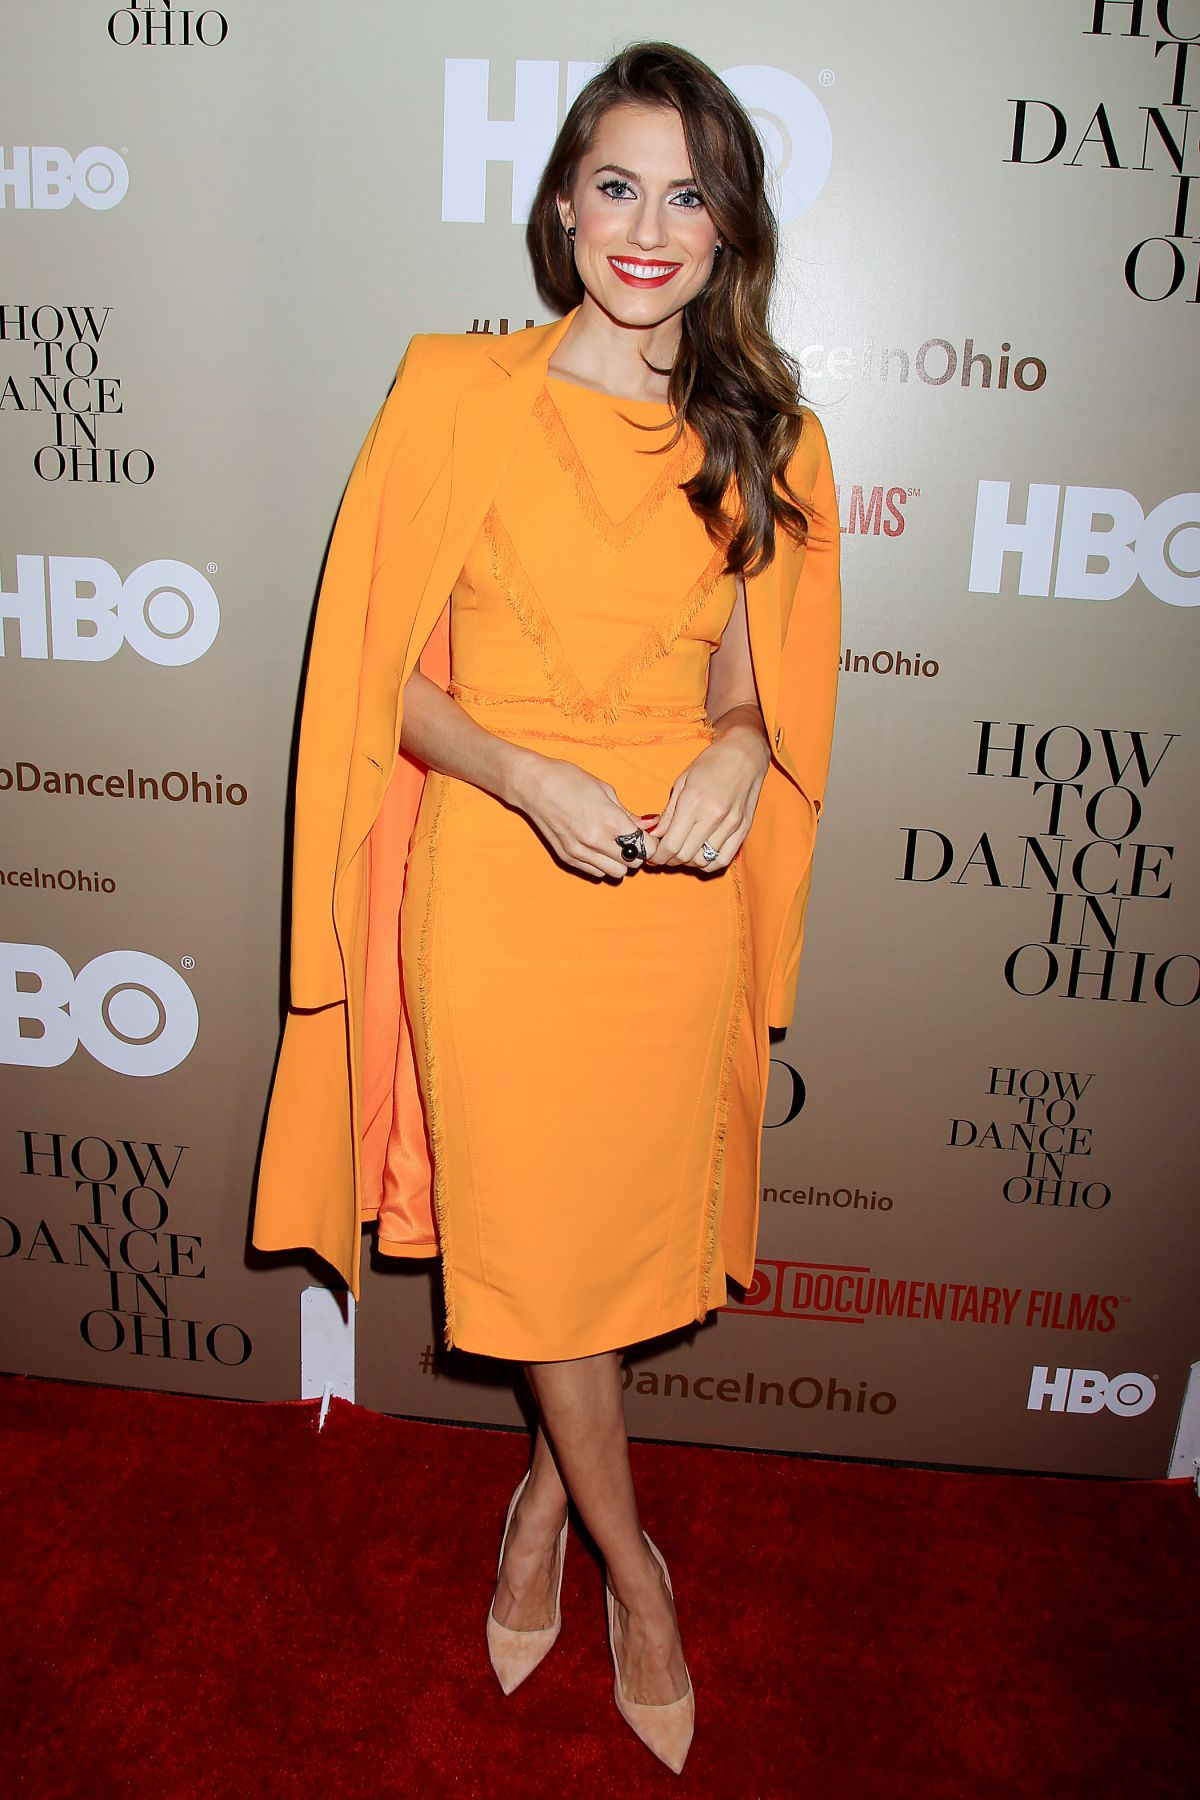 ALLISON WILLIAMS at How to Dance in Ohio Premiere in New York 10/19/2015